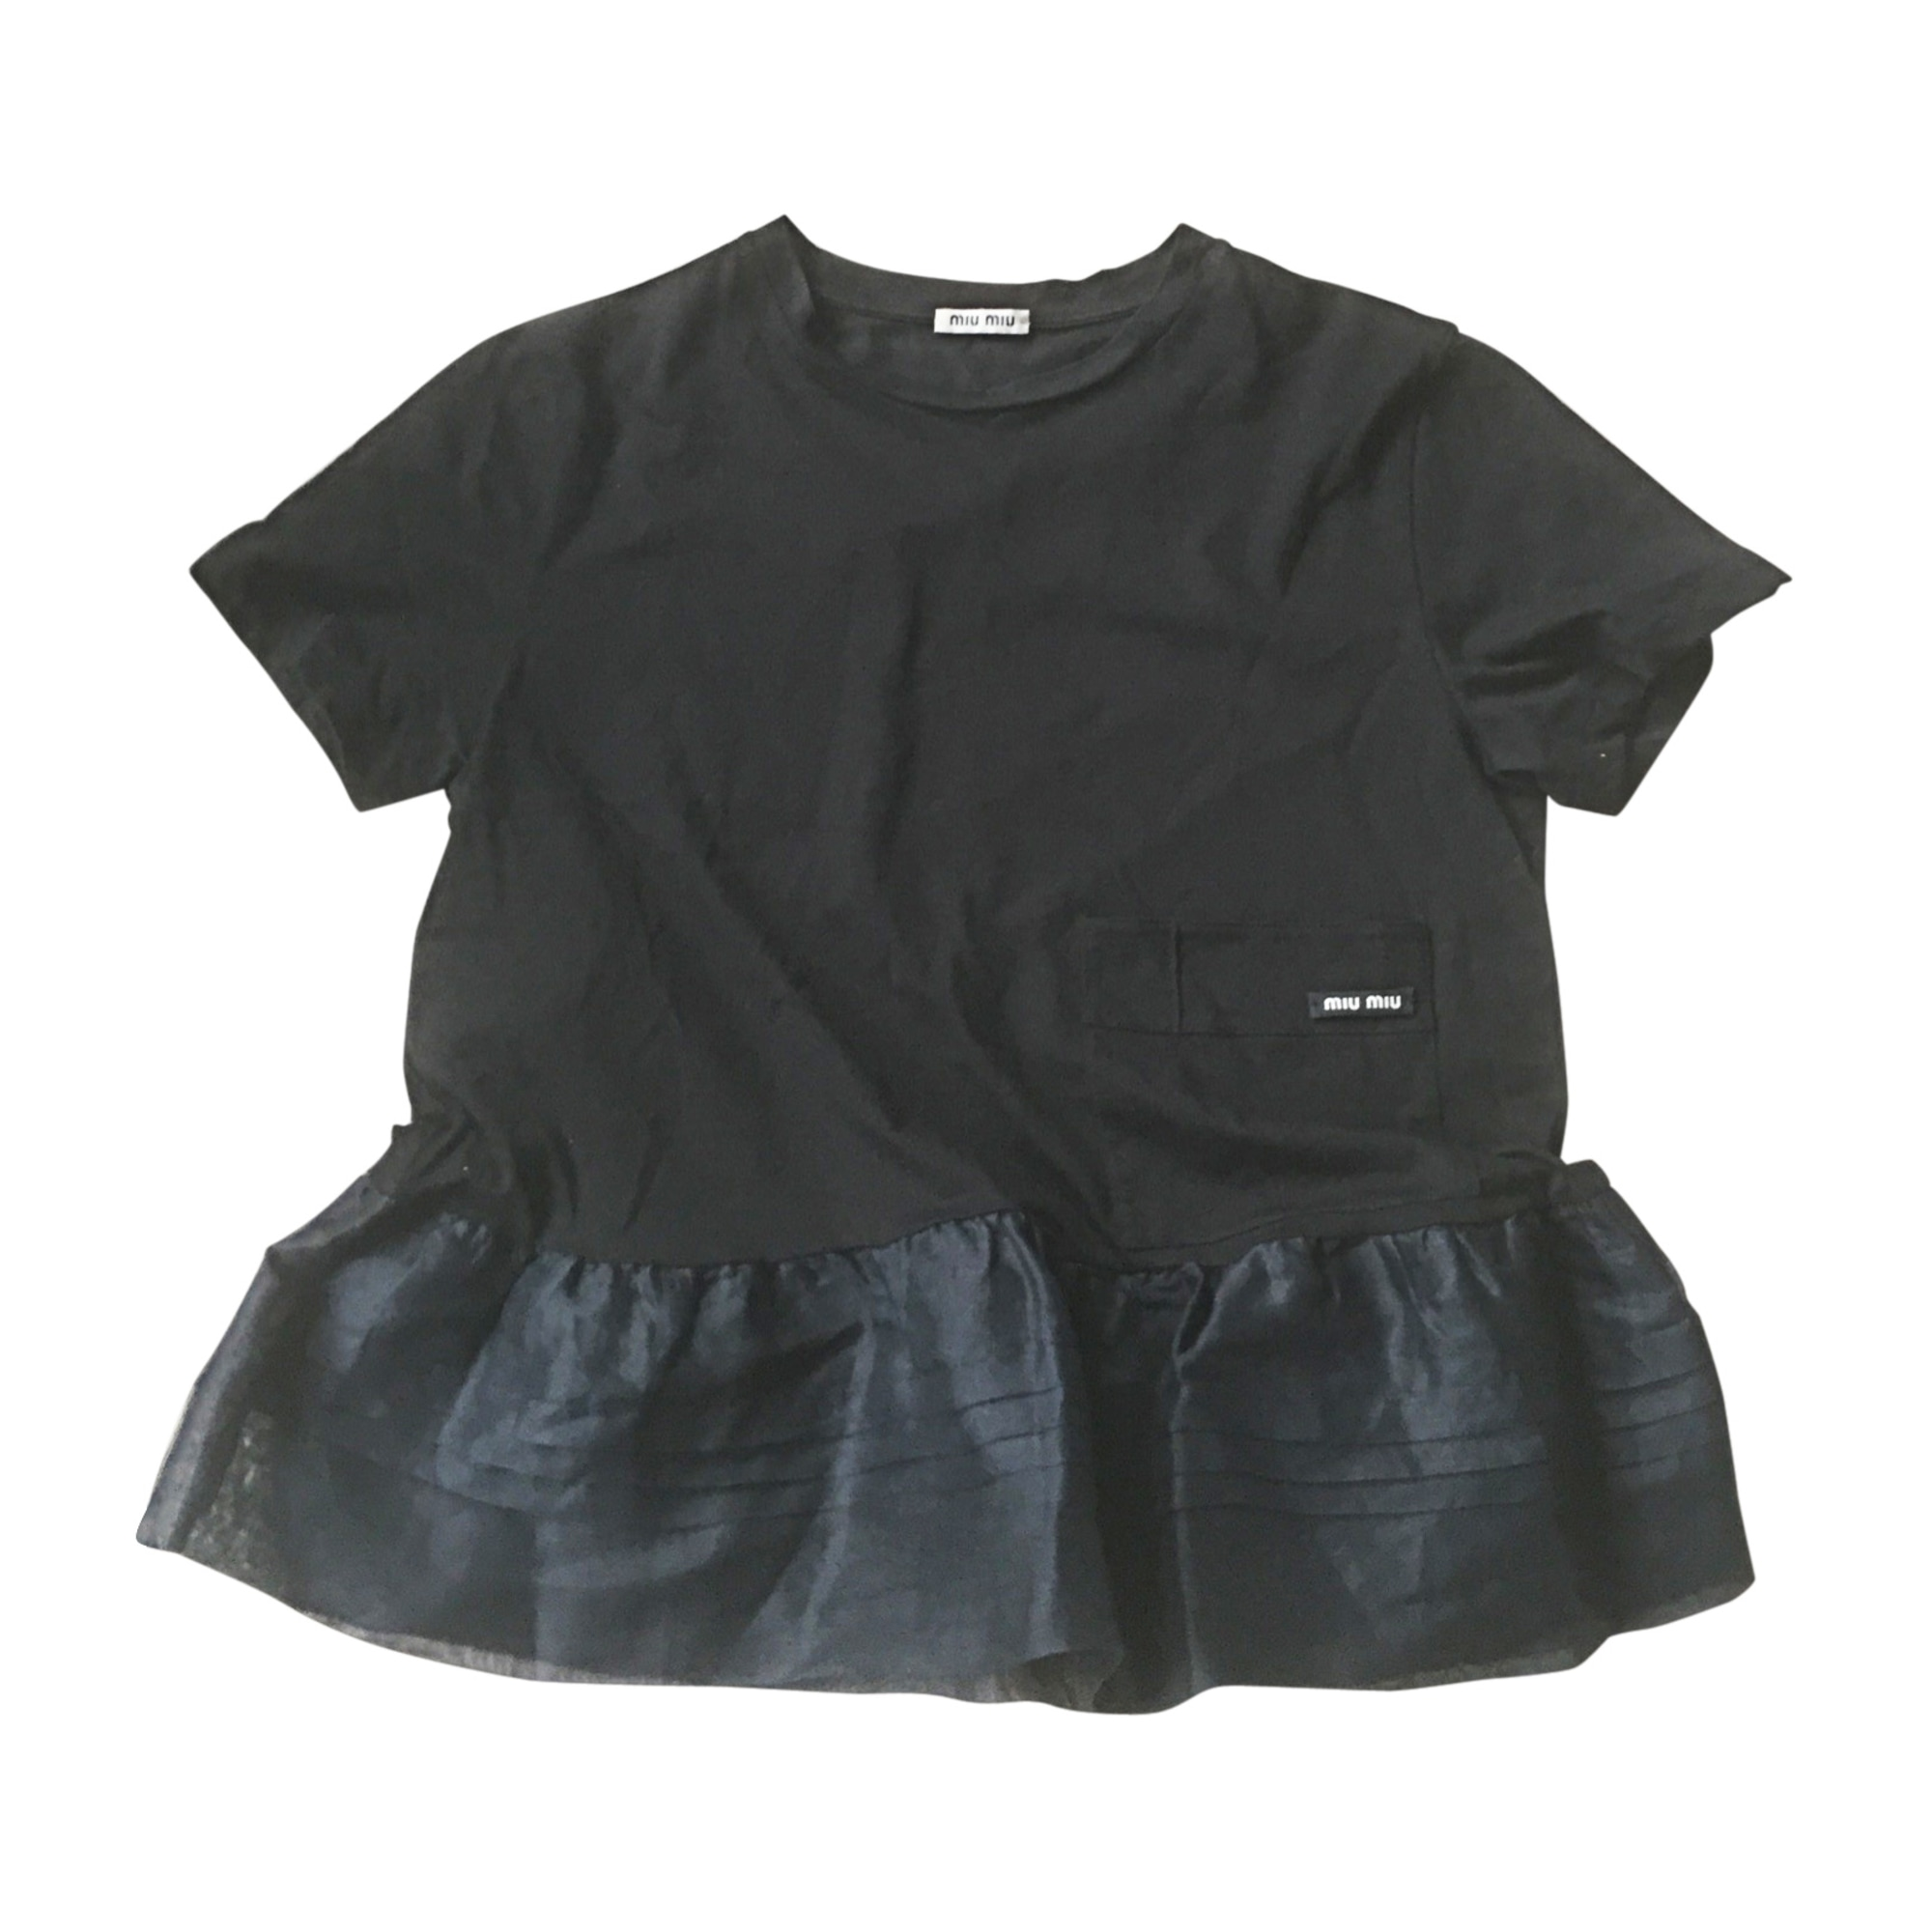 Top, T-shirt MIU MIU Black